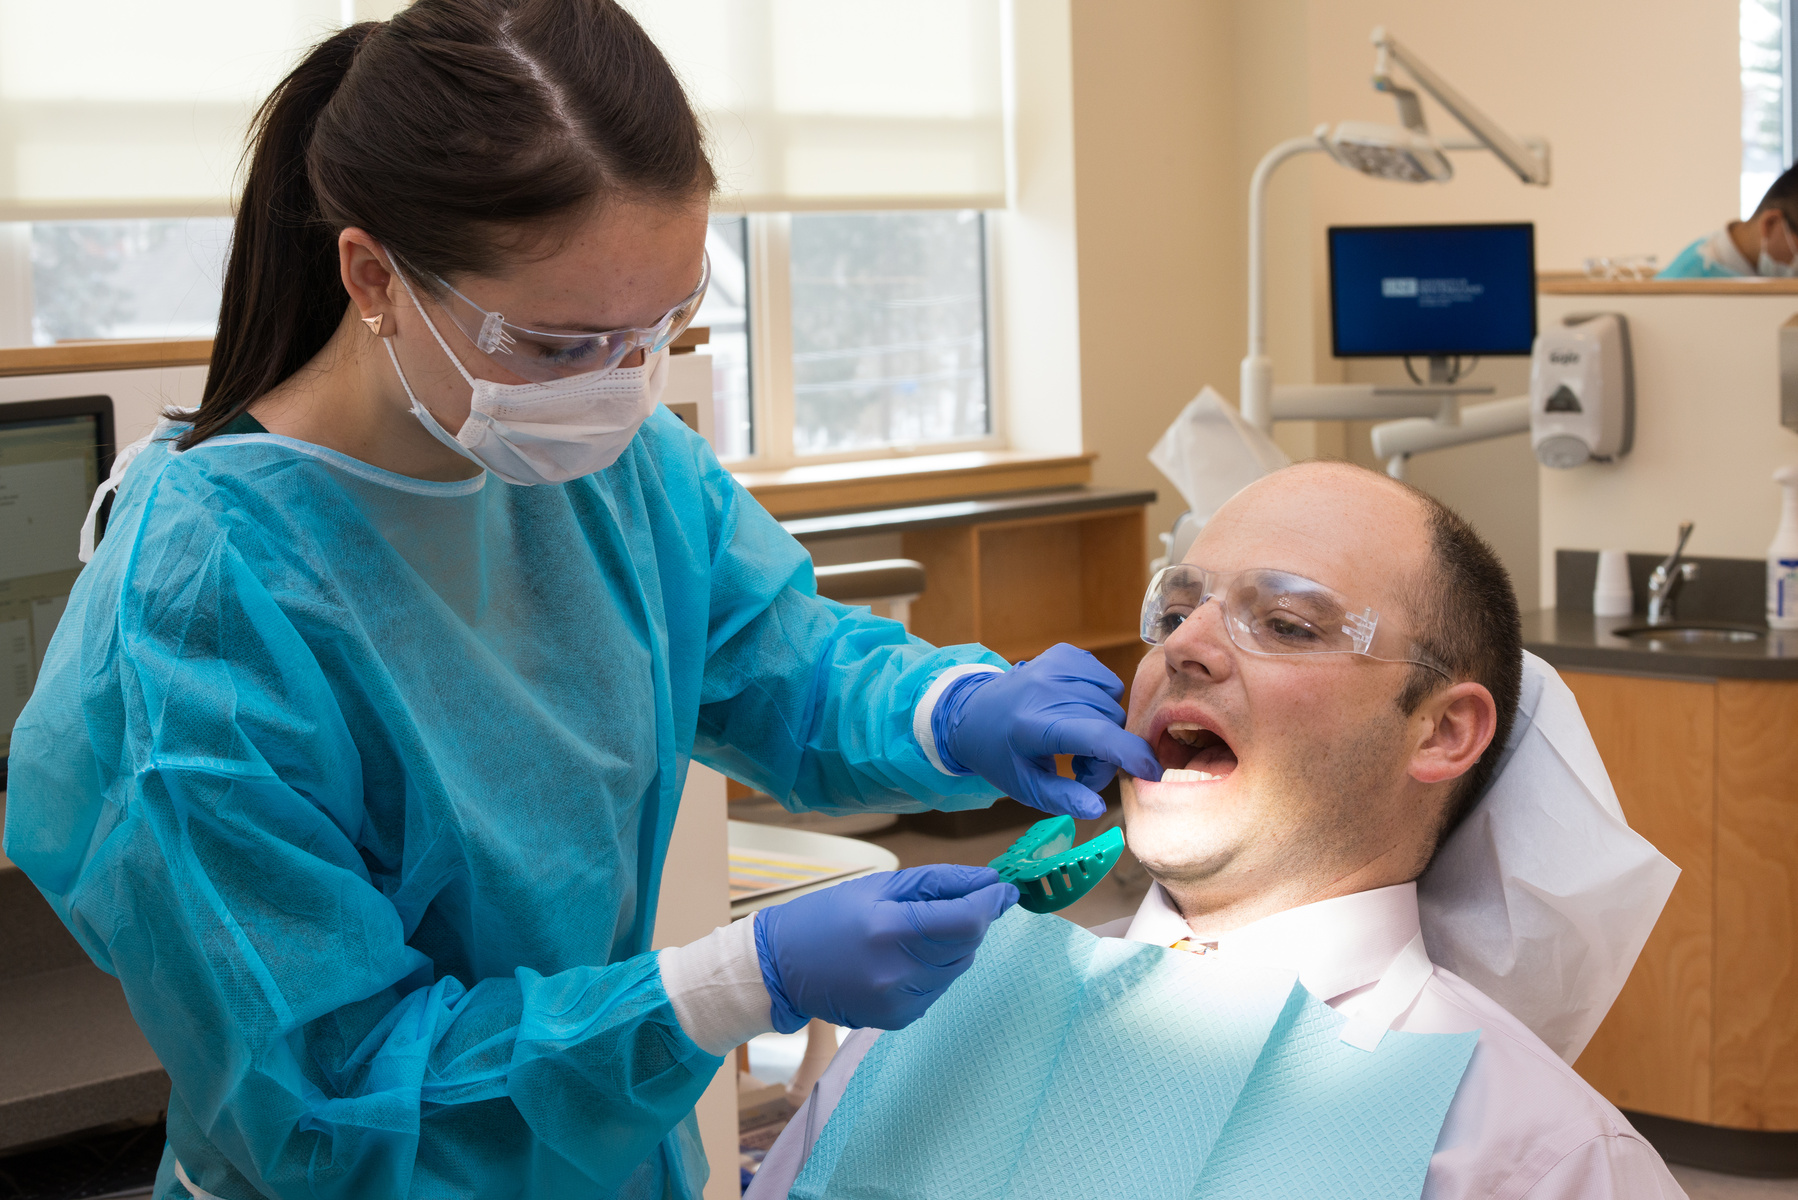 A U N E dental student inserts a green instrument into a patient's mouth